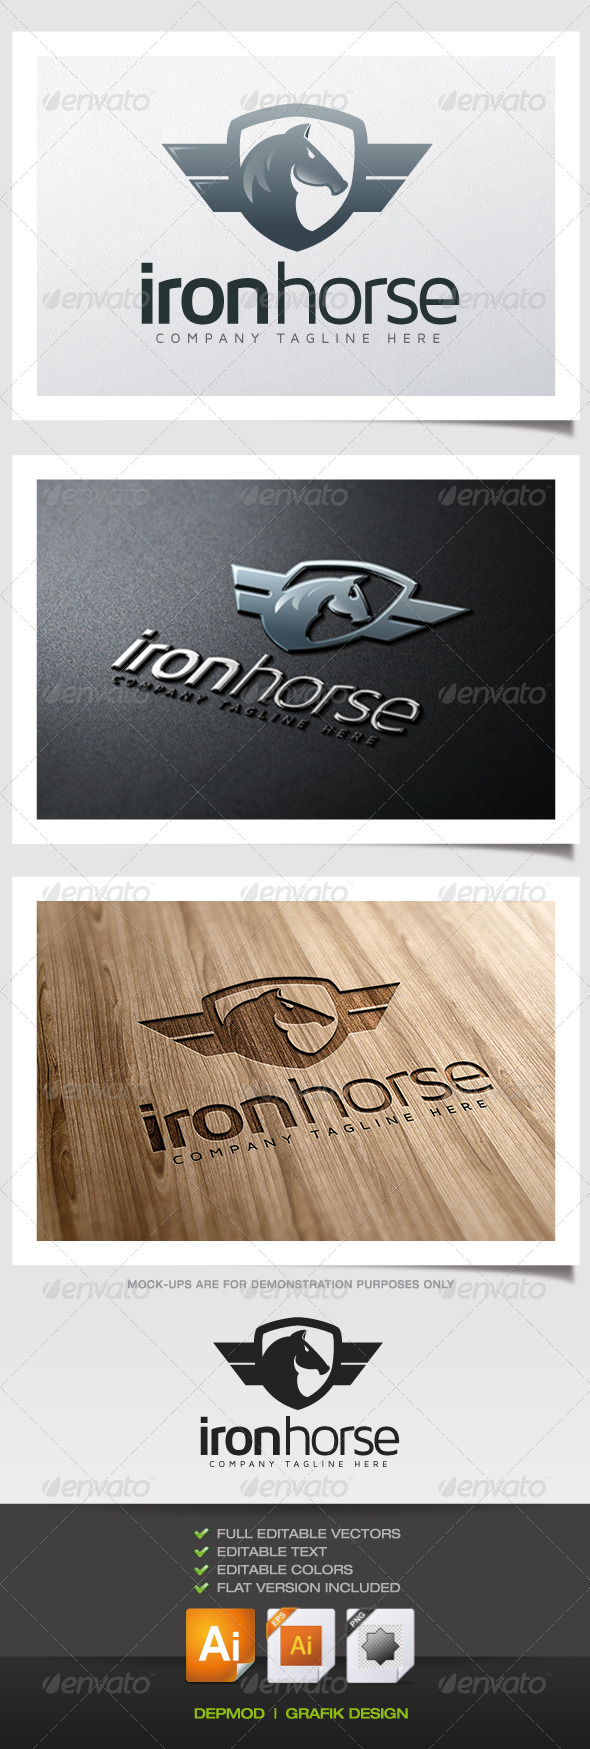 GraphicRiver Iron Horse Logo 5629000